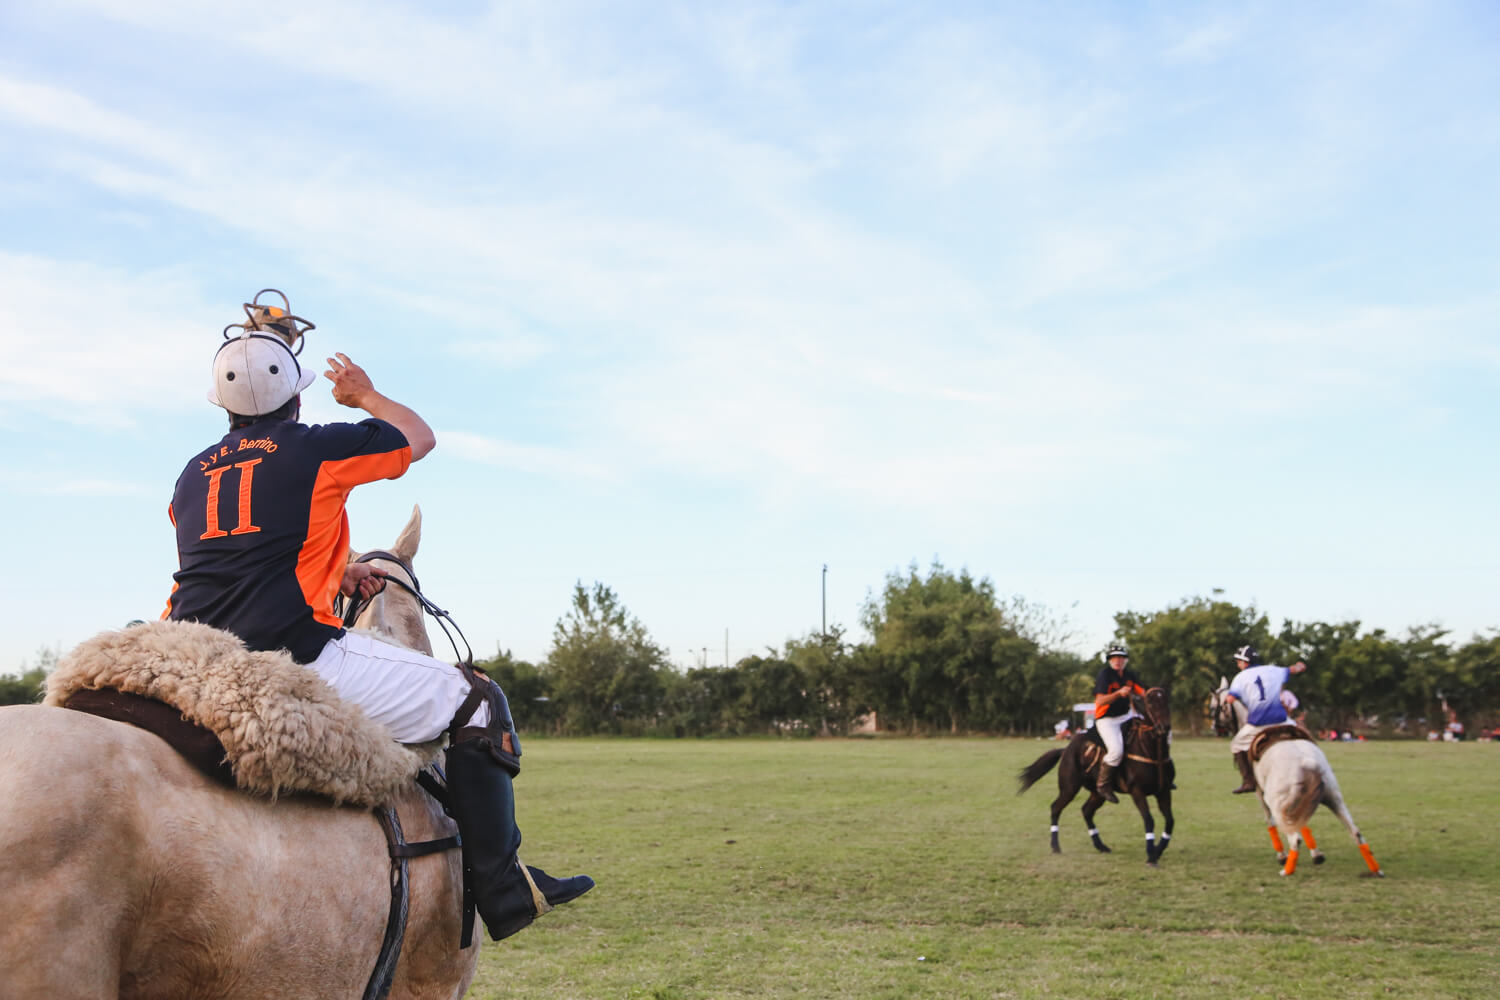 A player on horseback throws a ball for the start of Pato Argentina's National Sport